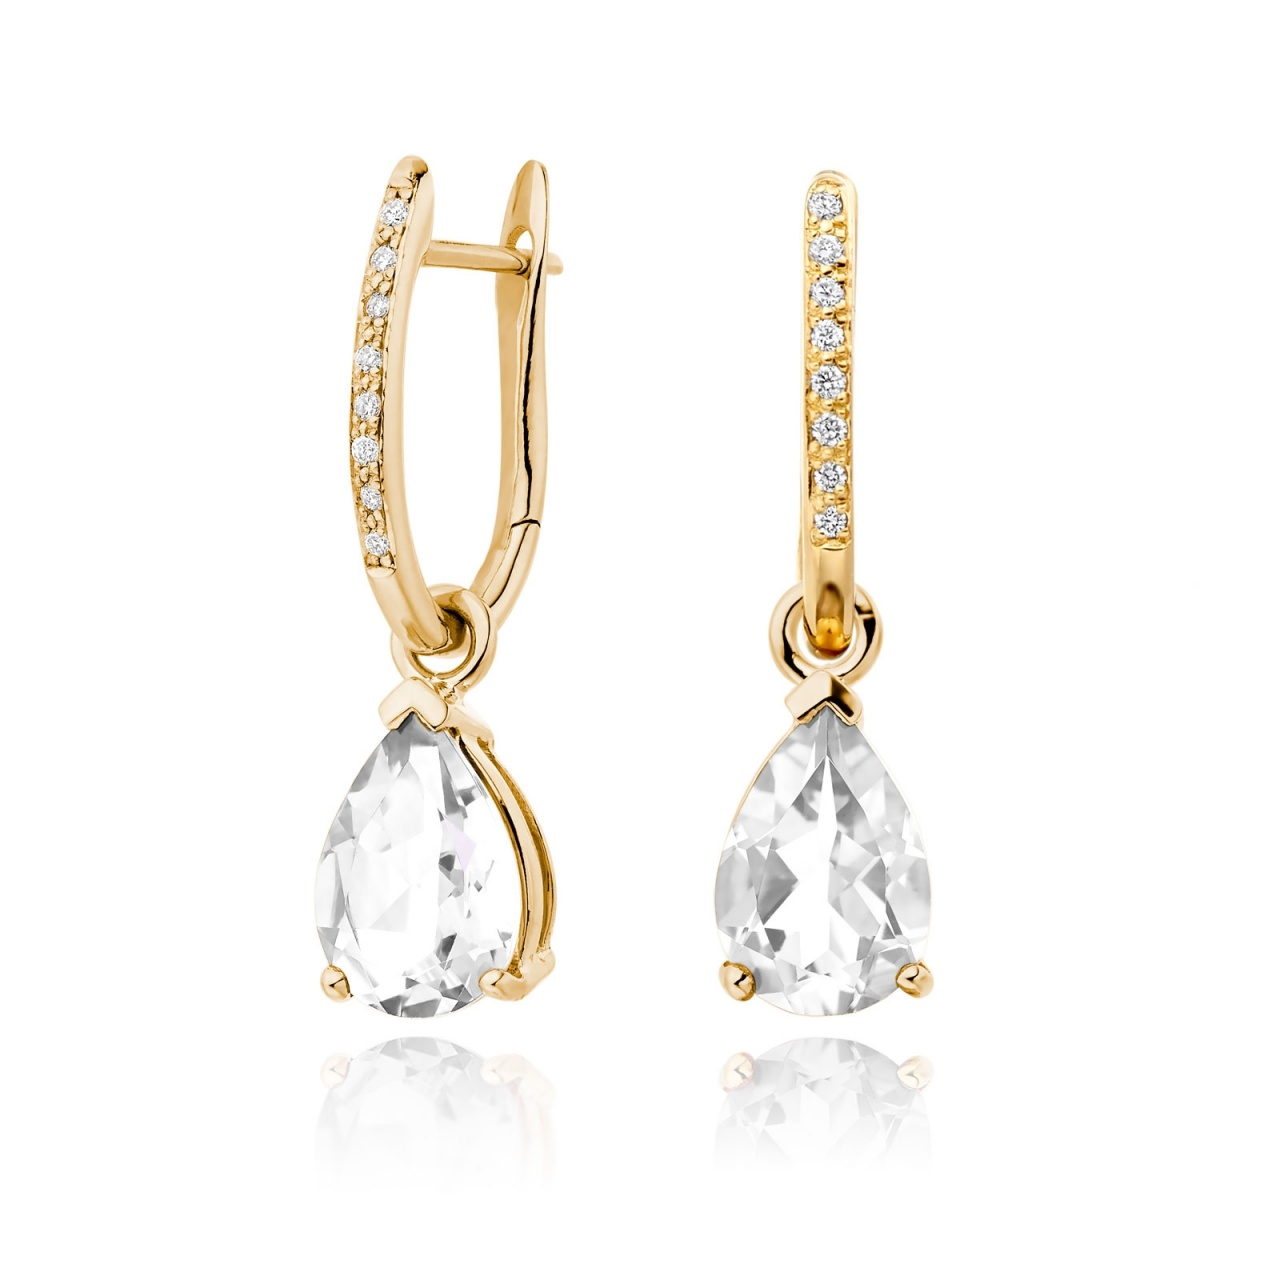 Yellow Gold Diamond Leverbacks with Mythologie White Topaz Drops-EAWTYG1277-1